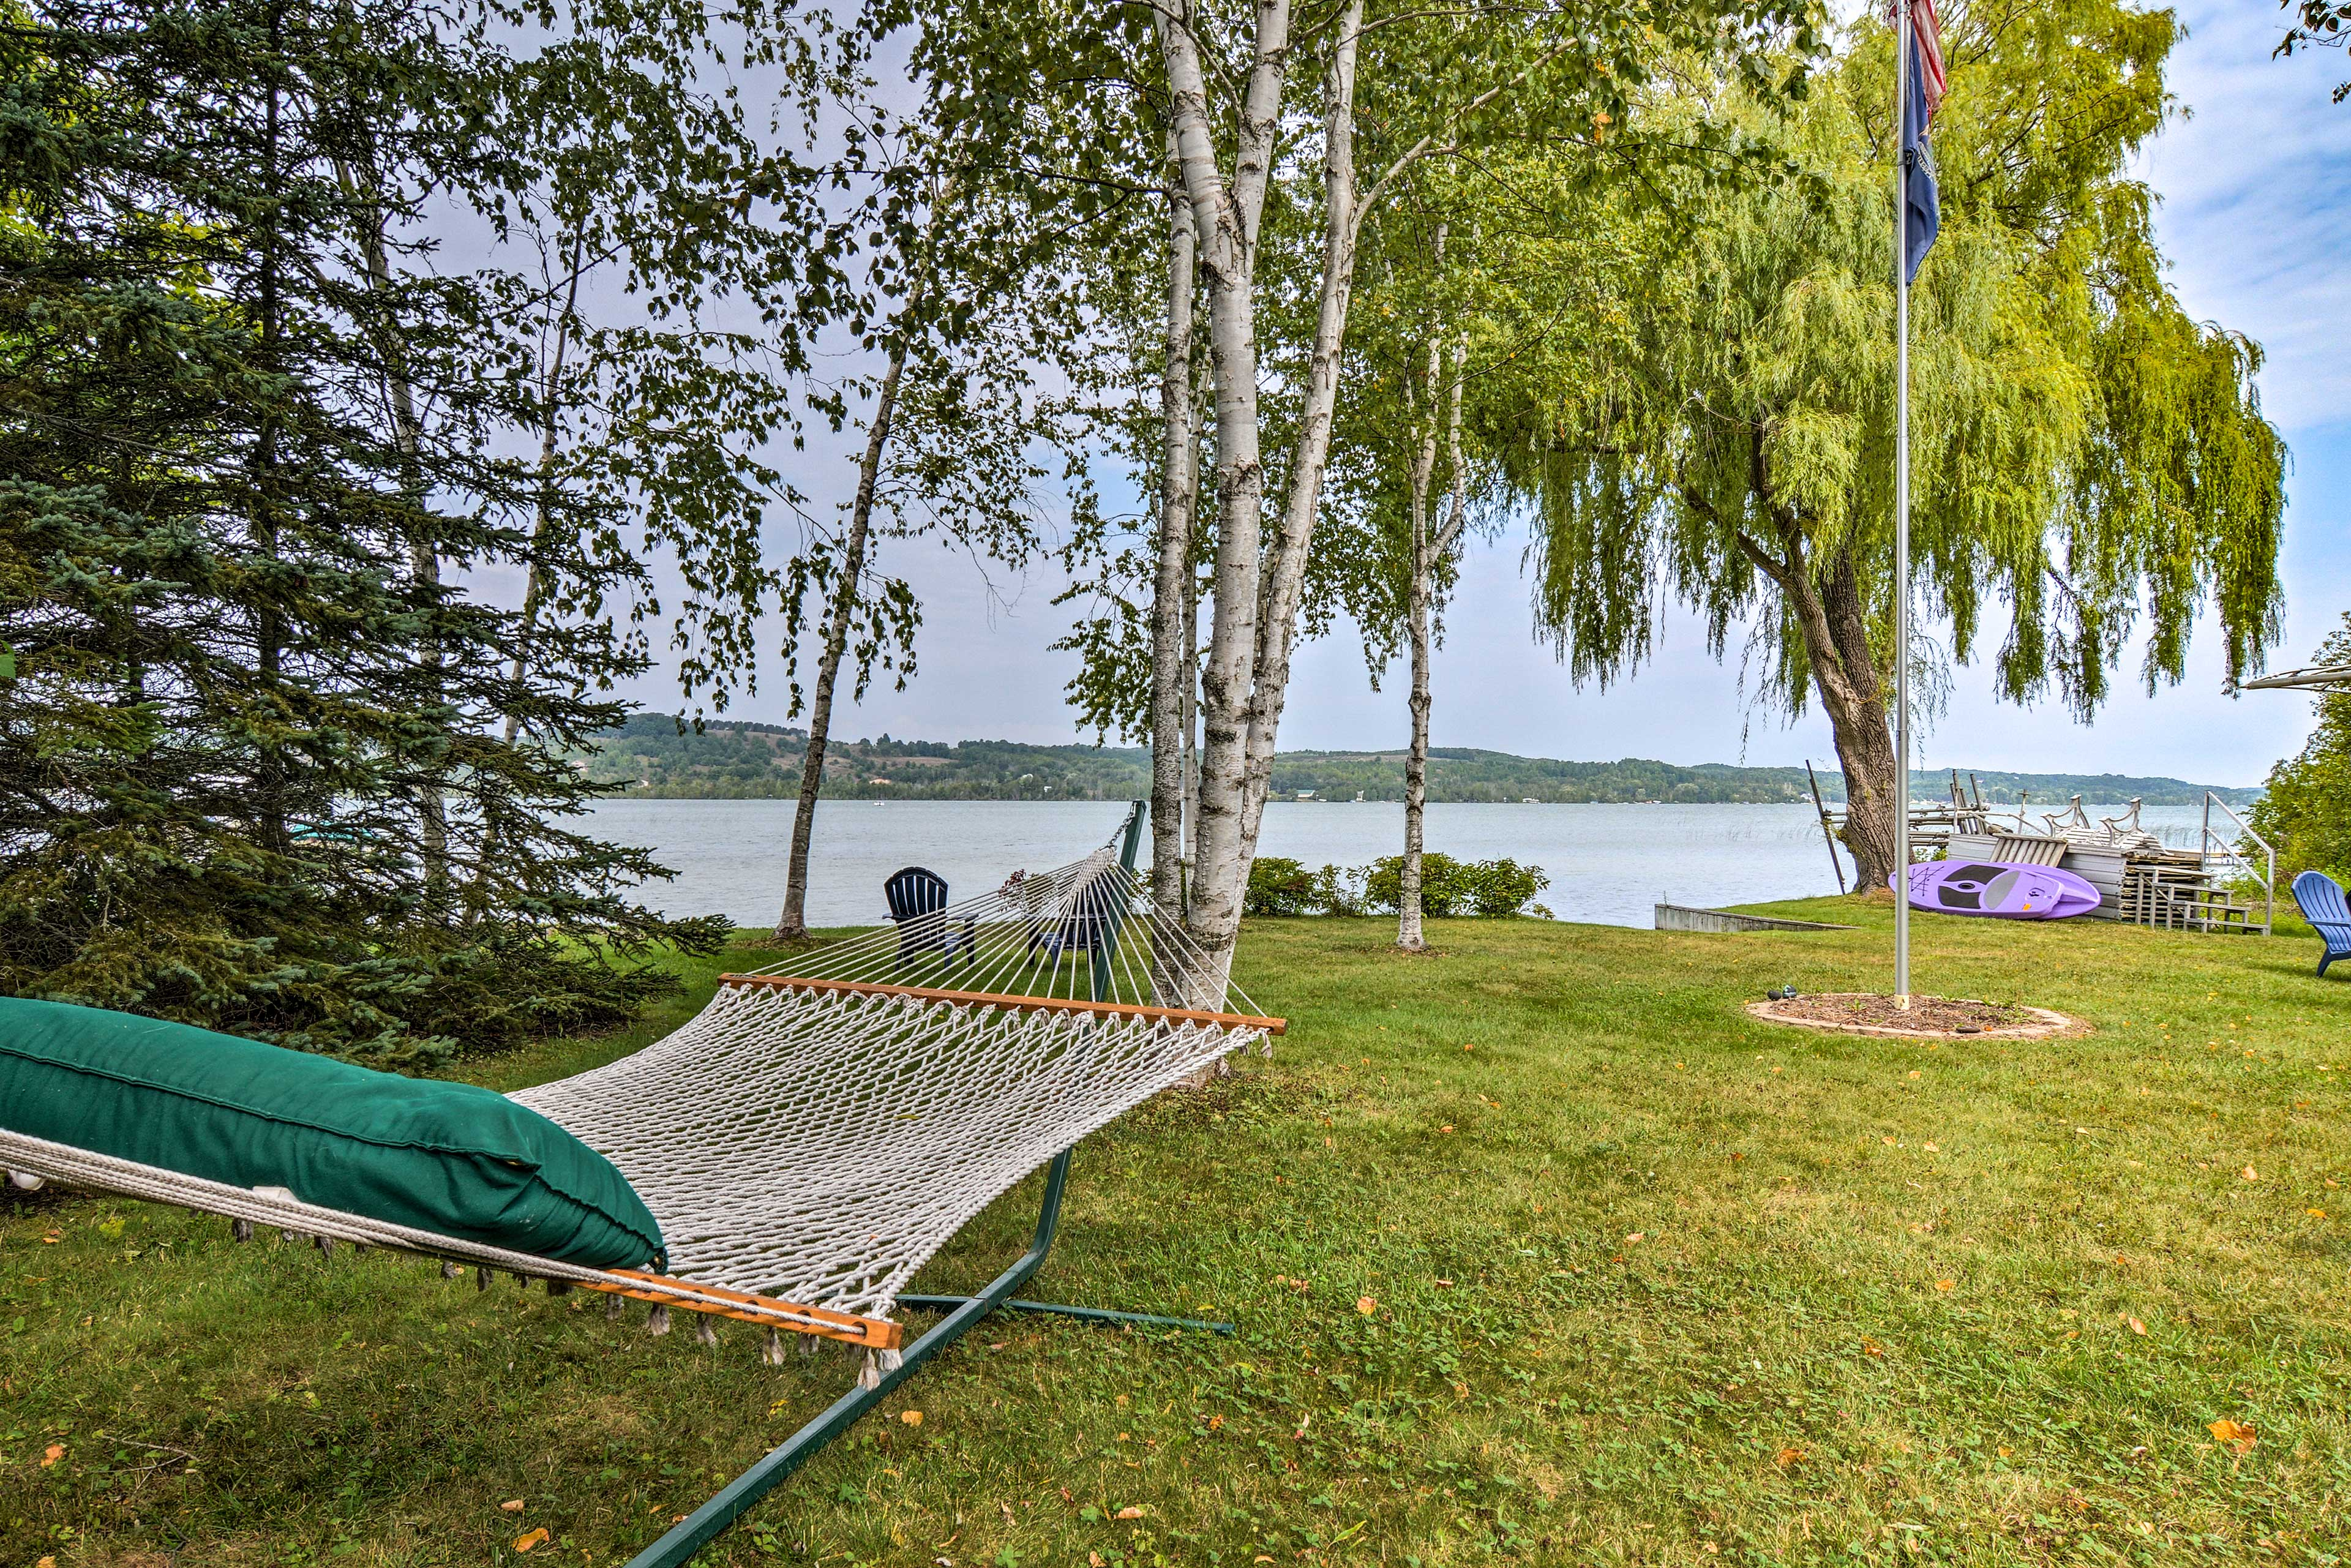 Lounge in the hammock with your favorite book and the peaceful lake sounds.